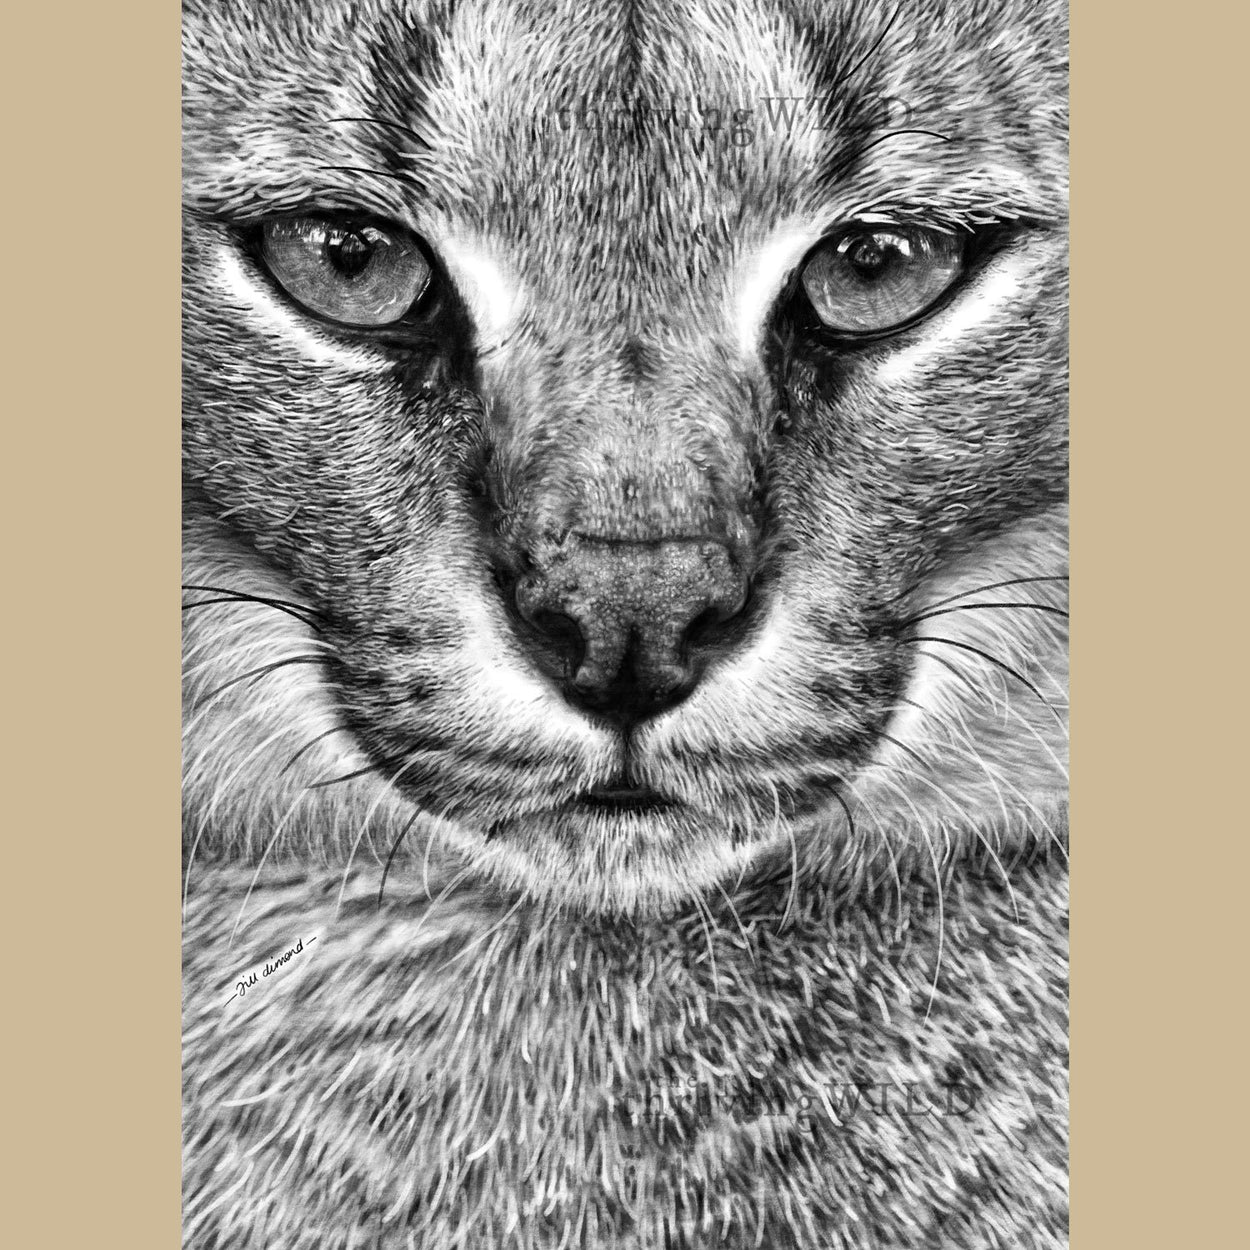 Caracal Lynx Procreate Digital Drawing - The Thriving Wild.jpg